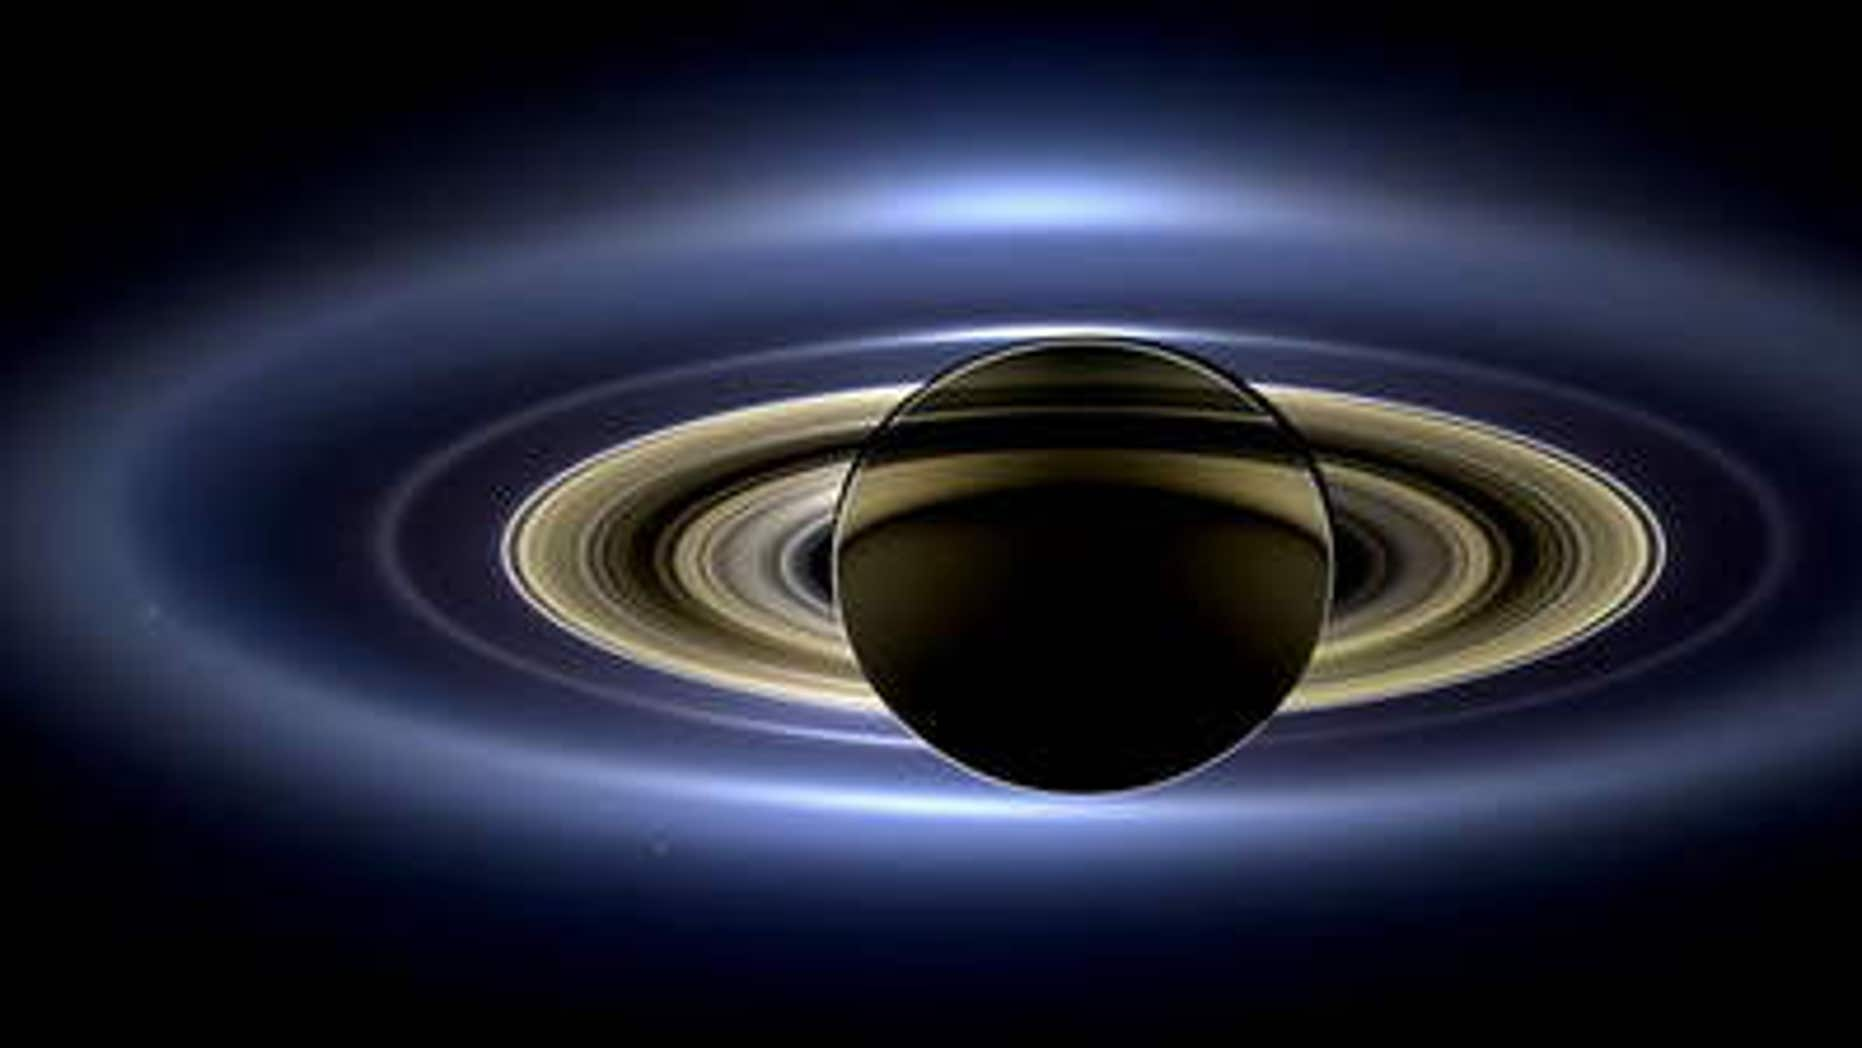 A new mosaic of Saturn and rings made by Cassini spacecraft, brightened version with contrast and color enhanced. Image released Nov. 12, 2013.